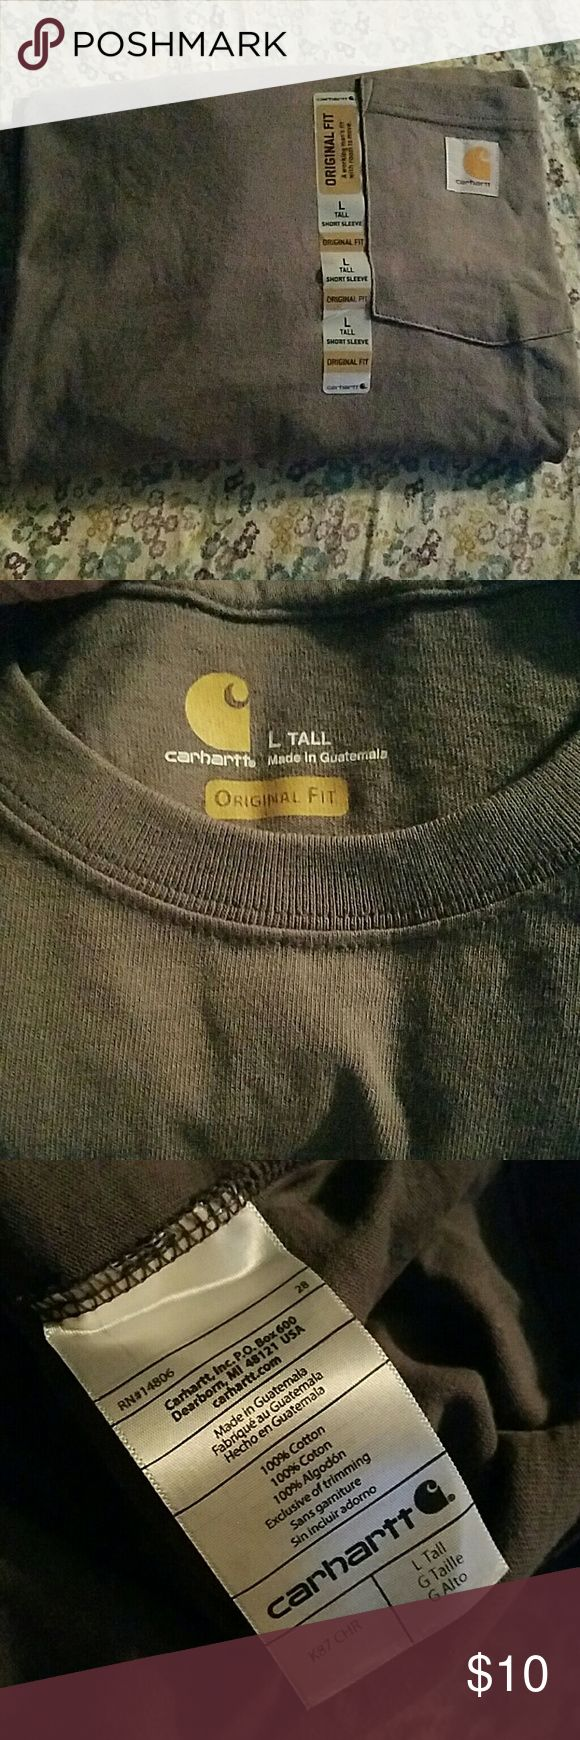 NWT Carhartt Work Shirt Too small on the boyfriend, too big for me.  Brand new, never worn Carhartt tall, short sleeve work shirt. If you know anything about the brand you know this work shirt will last you for years no matter what you throw at it. Since it's sized tall it's perfect for tucking in and staying there.  Medium gray color Carhartt Shirts Tees - Short Sleeve